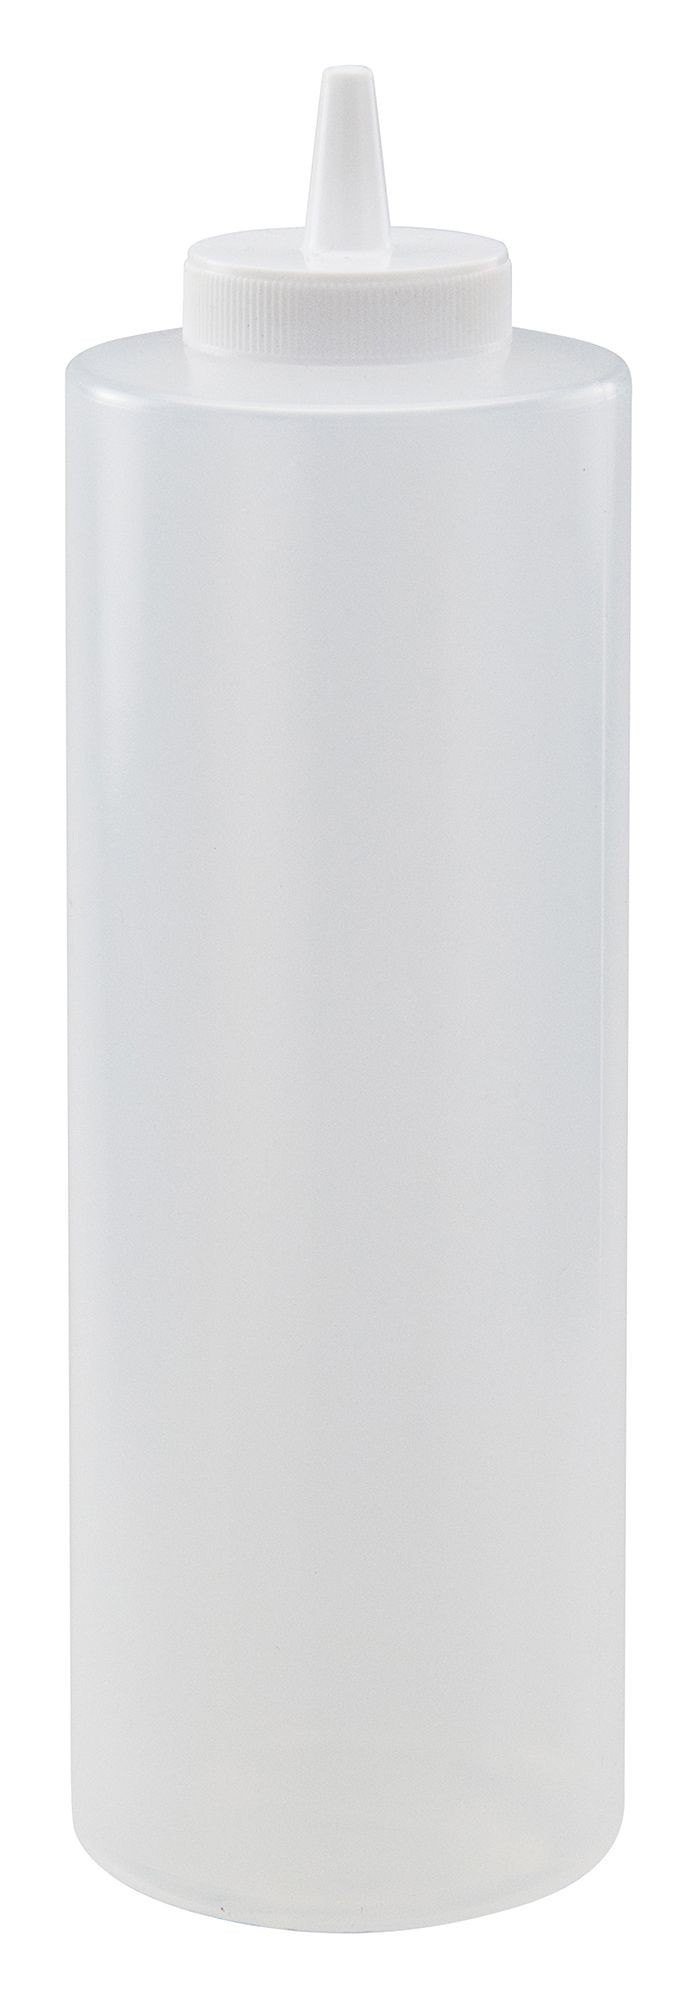 Winco PSB-24C Clear Plastic 24 oz. Squeeze Bottle